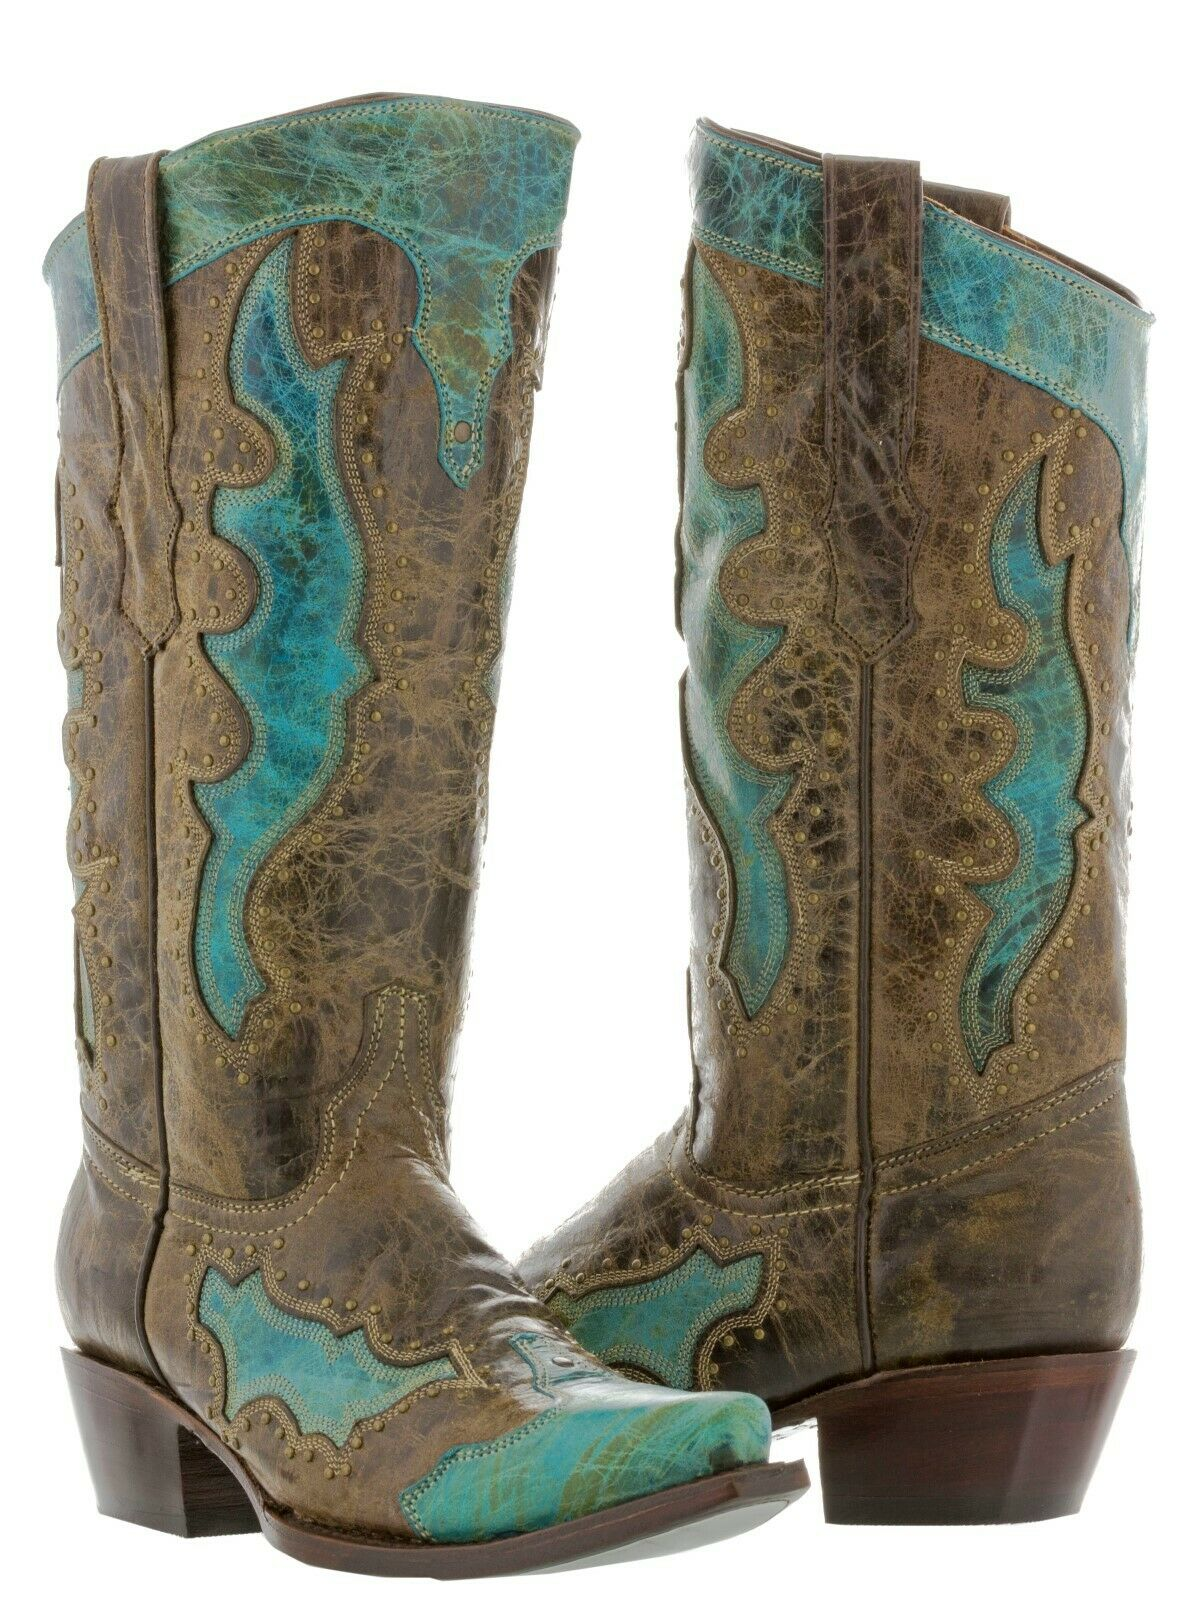 Cowboy Professional Genuine Leather Leather Leather Western Boots Point Toe Studs Turquoise d36178